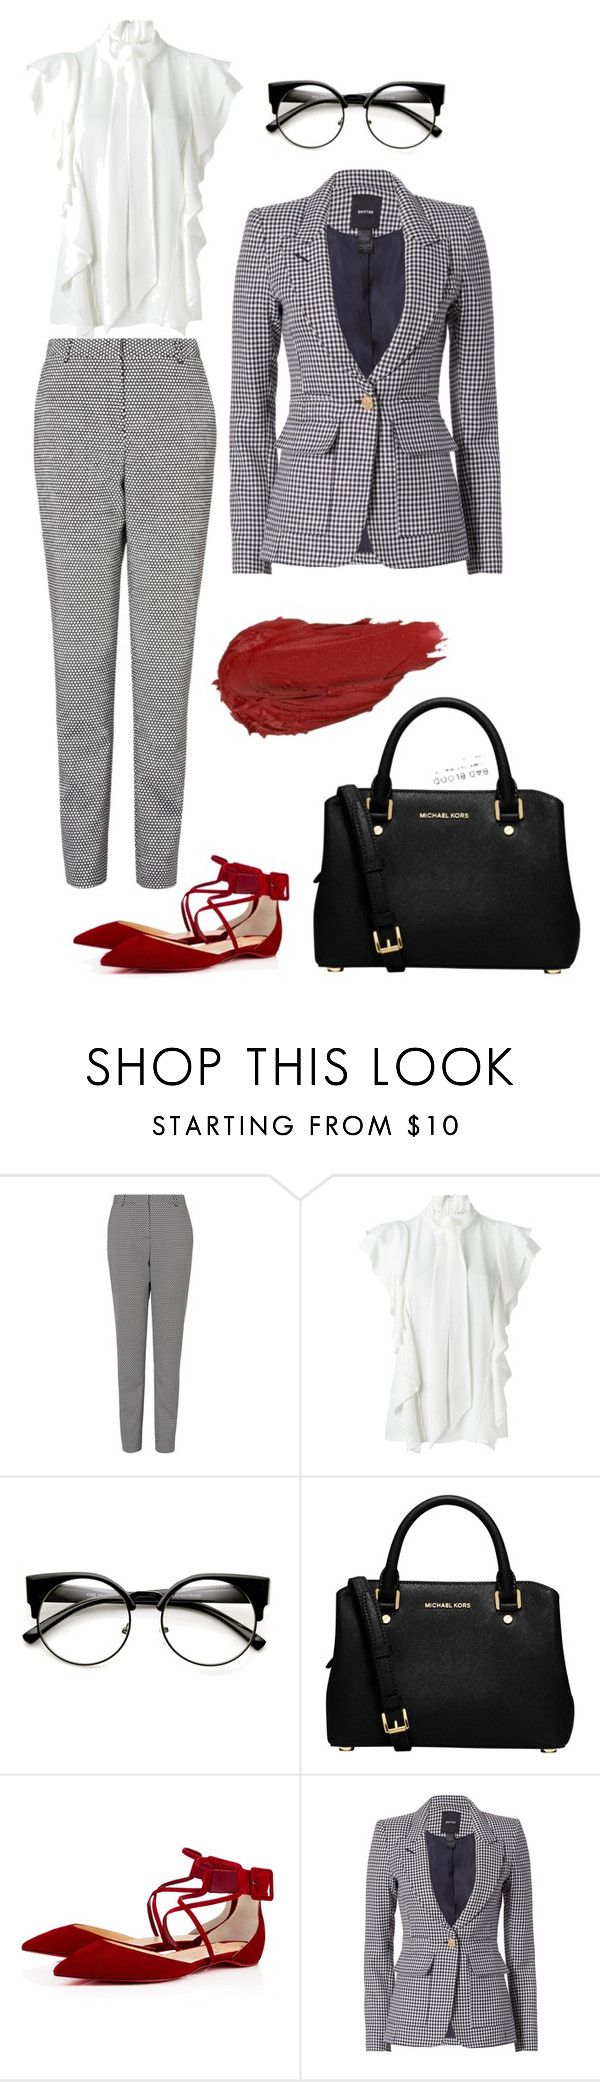 """Look 1 - WILSONS"" by kirravanblanken on Polyvore featuring L.K.Bennett, Lanvin, Urban Decay, MICHAEL Michael Kors and Smythe"